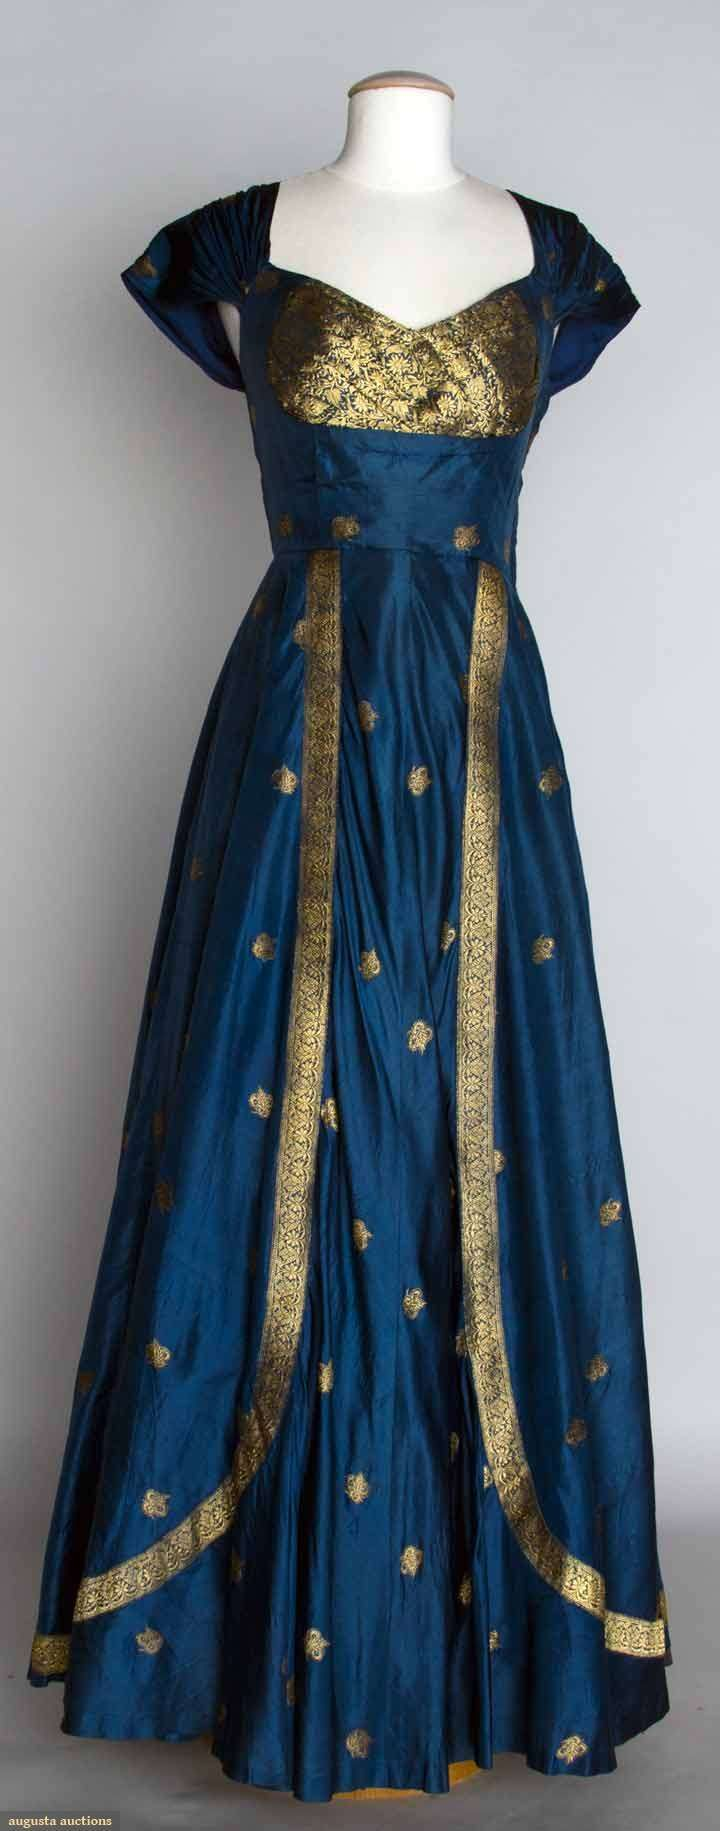 1950 Blue silk taffeta w/ metallic gold brocade dress, fashioned from Indian sari.